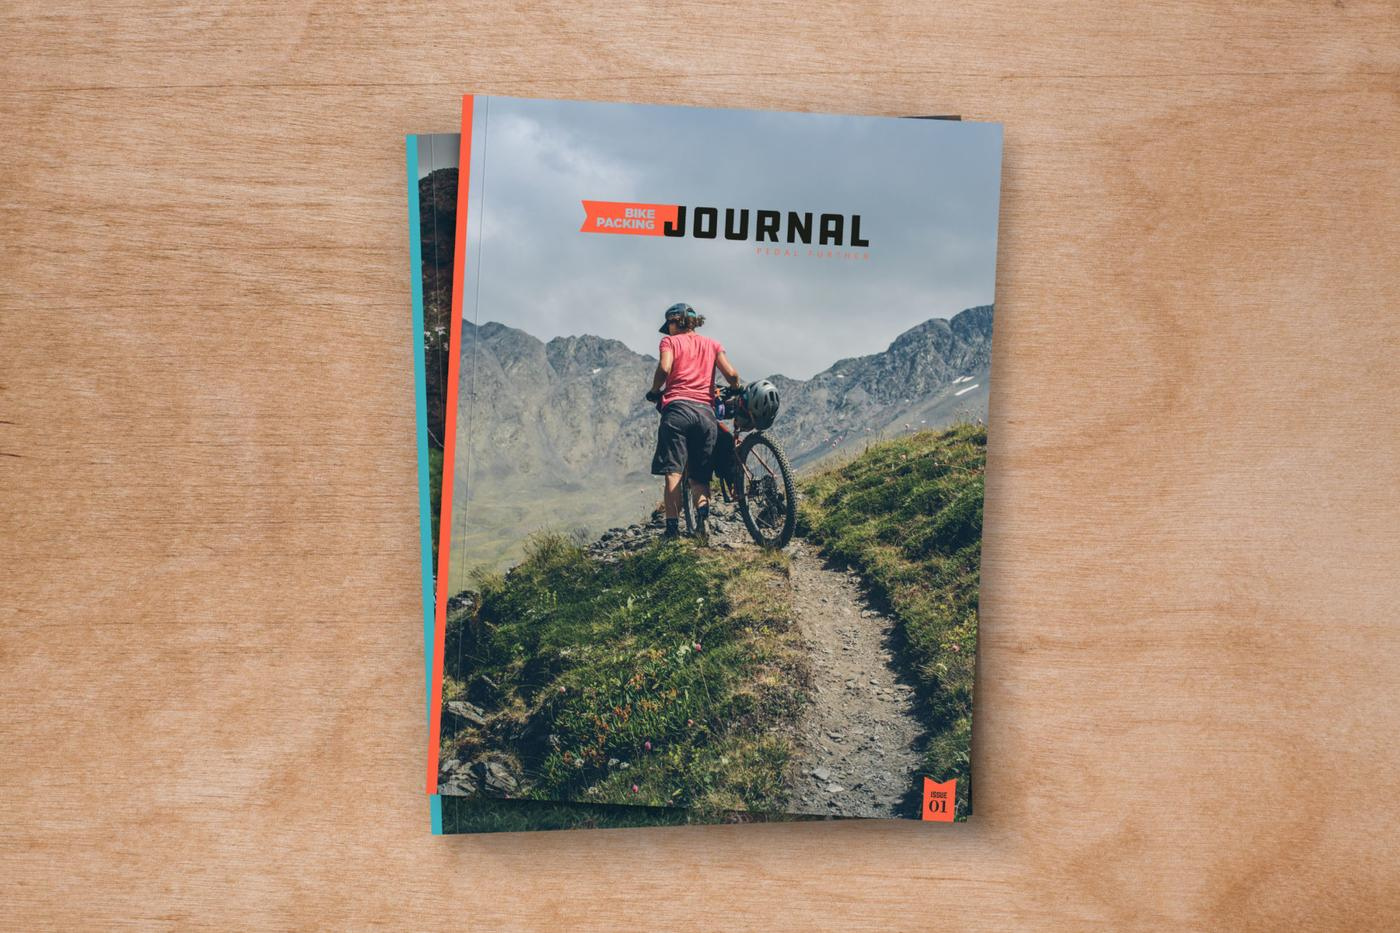 Bikepacking.com and Bunyan Velo Join Forces on the Bikepacking Journal